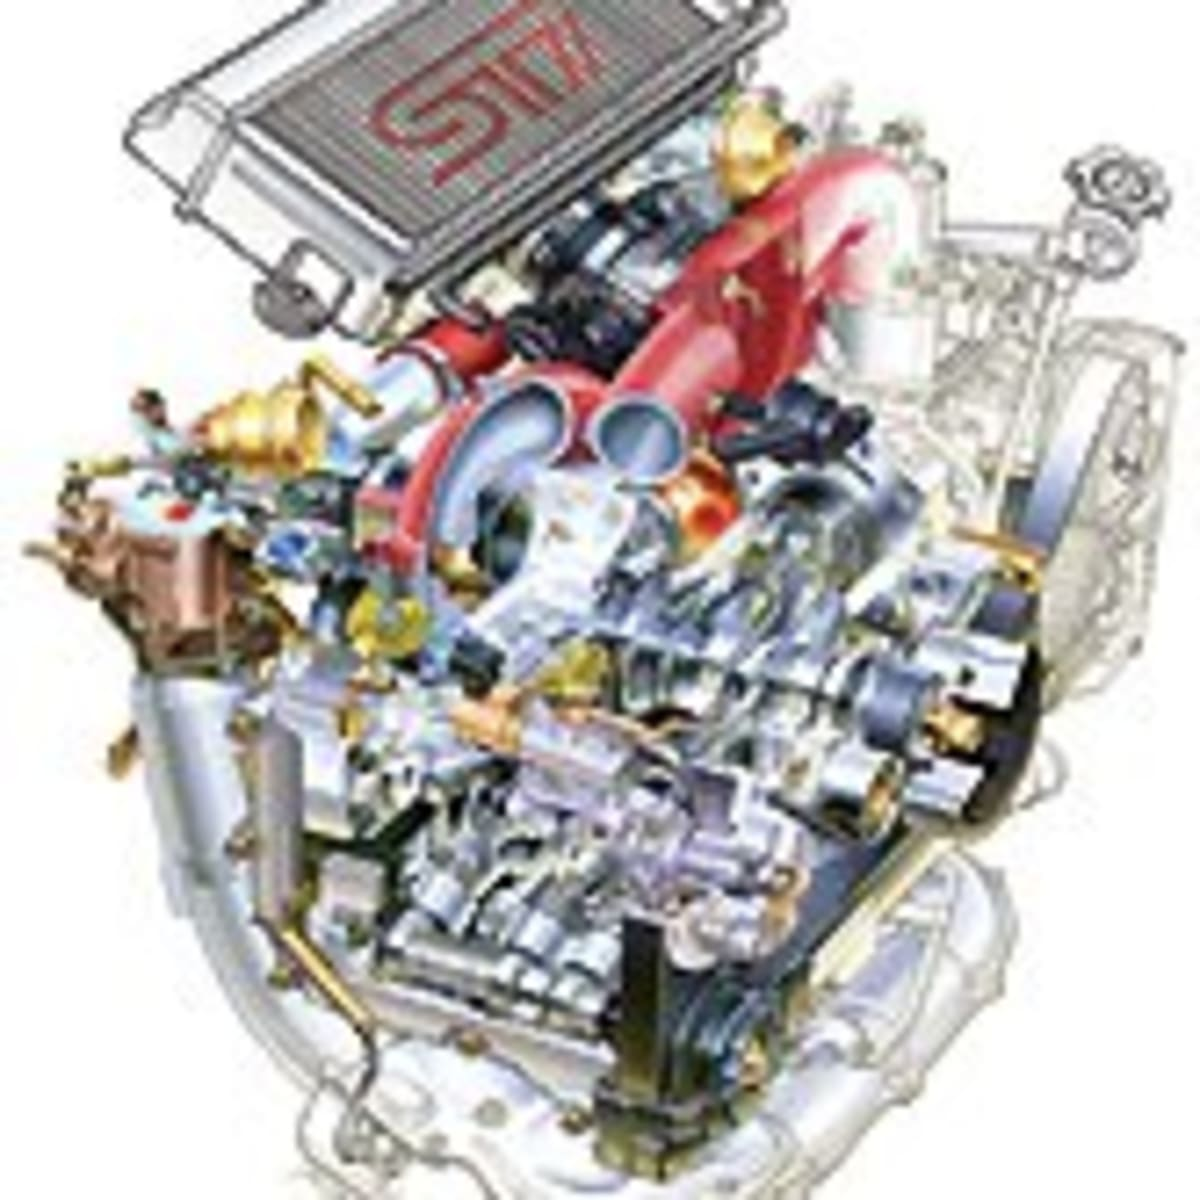 Saab 9 3 Engine Diagram Spark Plug On Saab 9 5 Turbo V6 Wiring